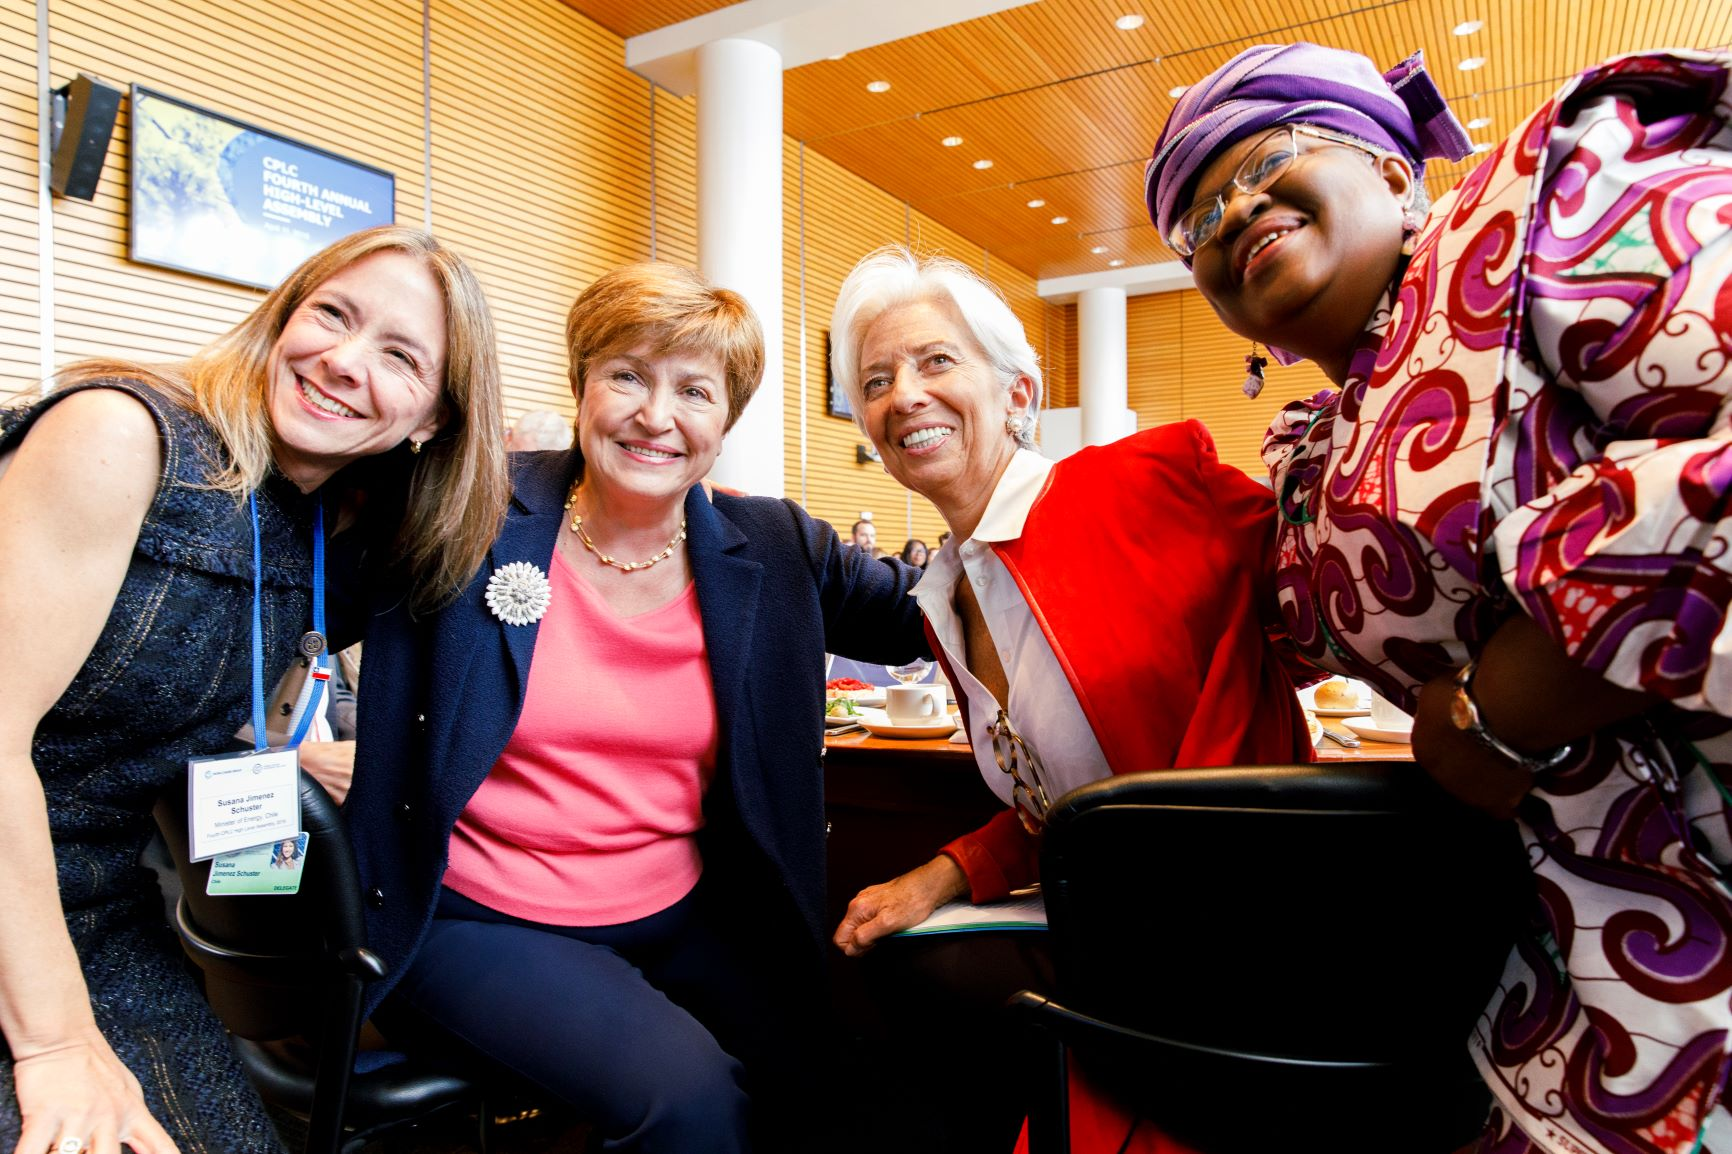 Susana Jiménez, Minister of Energy, Chile, Kristalina Georgieva, World Bank CEO, Christine Lagarde, IMF Managing Director, Ngozi Okonjo-Iweala, Co-Chair of the Global Commission on the Economy and Climate (NCE)